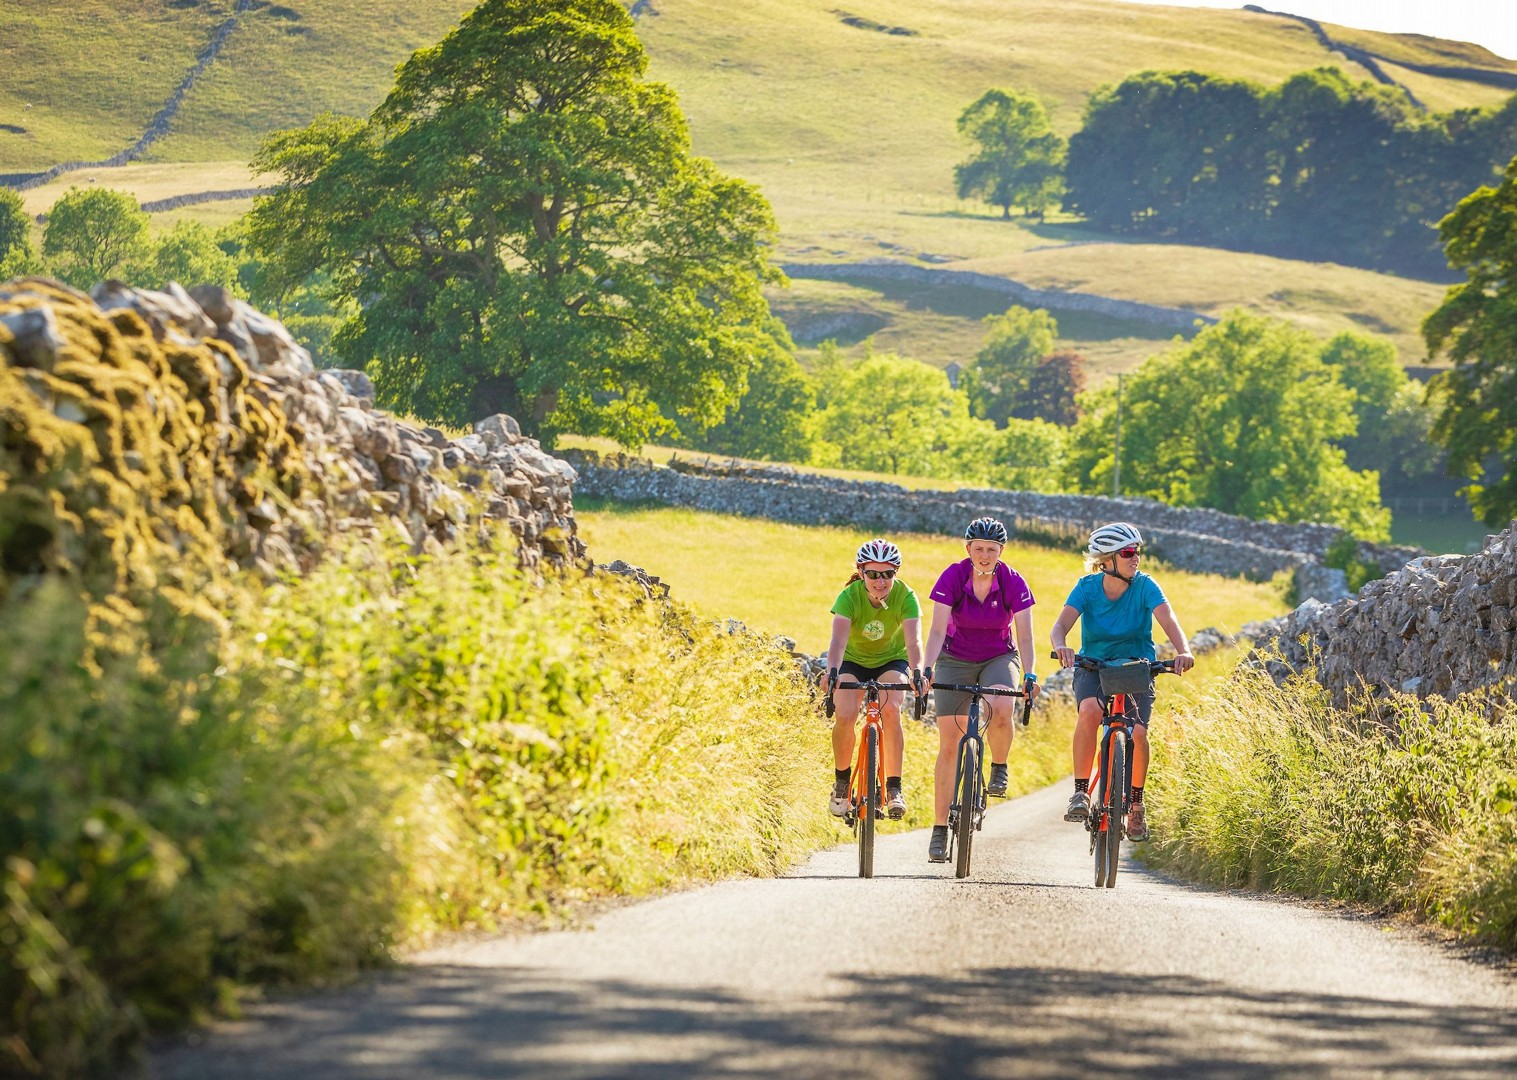 supported-leisure-cycling-in-yorkshire-uk-countryside.jpg - UK - Way of the Roses - Supported Leisure Cycling Holiday - Leisure Cycling